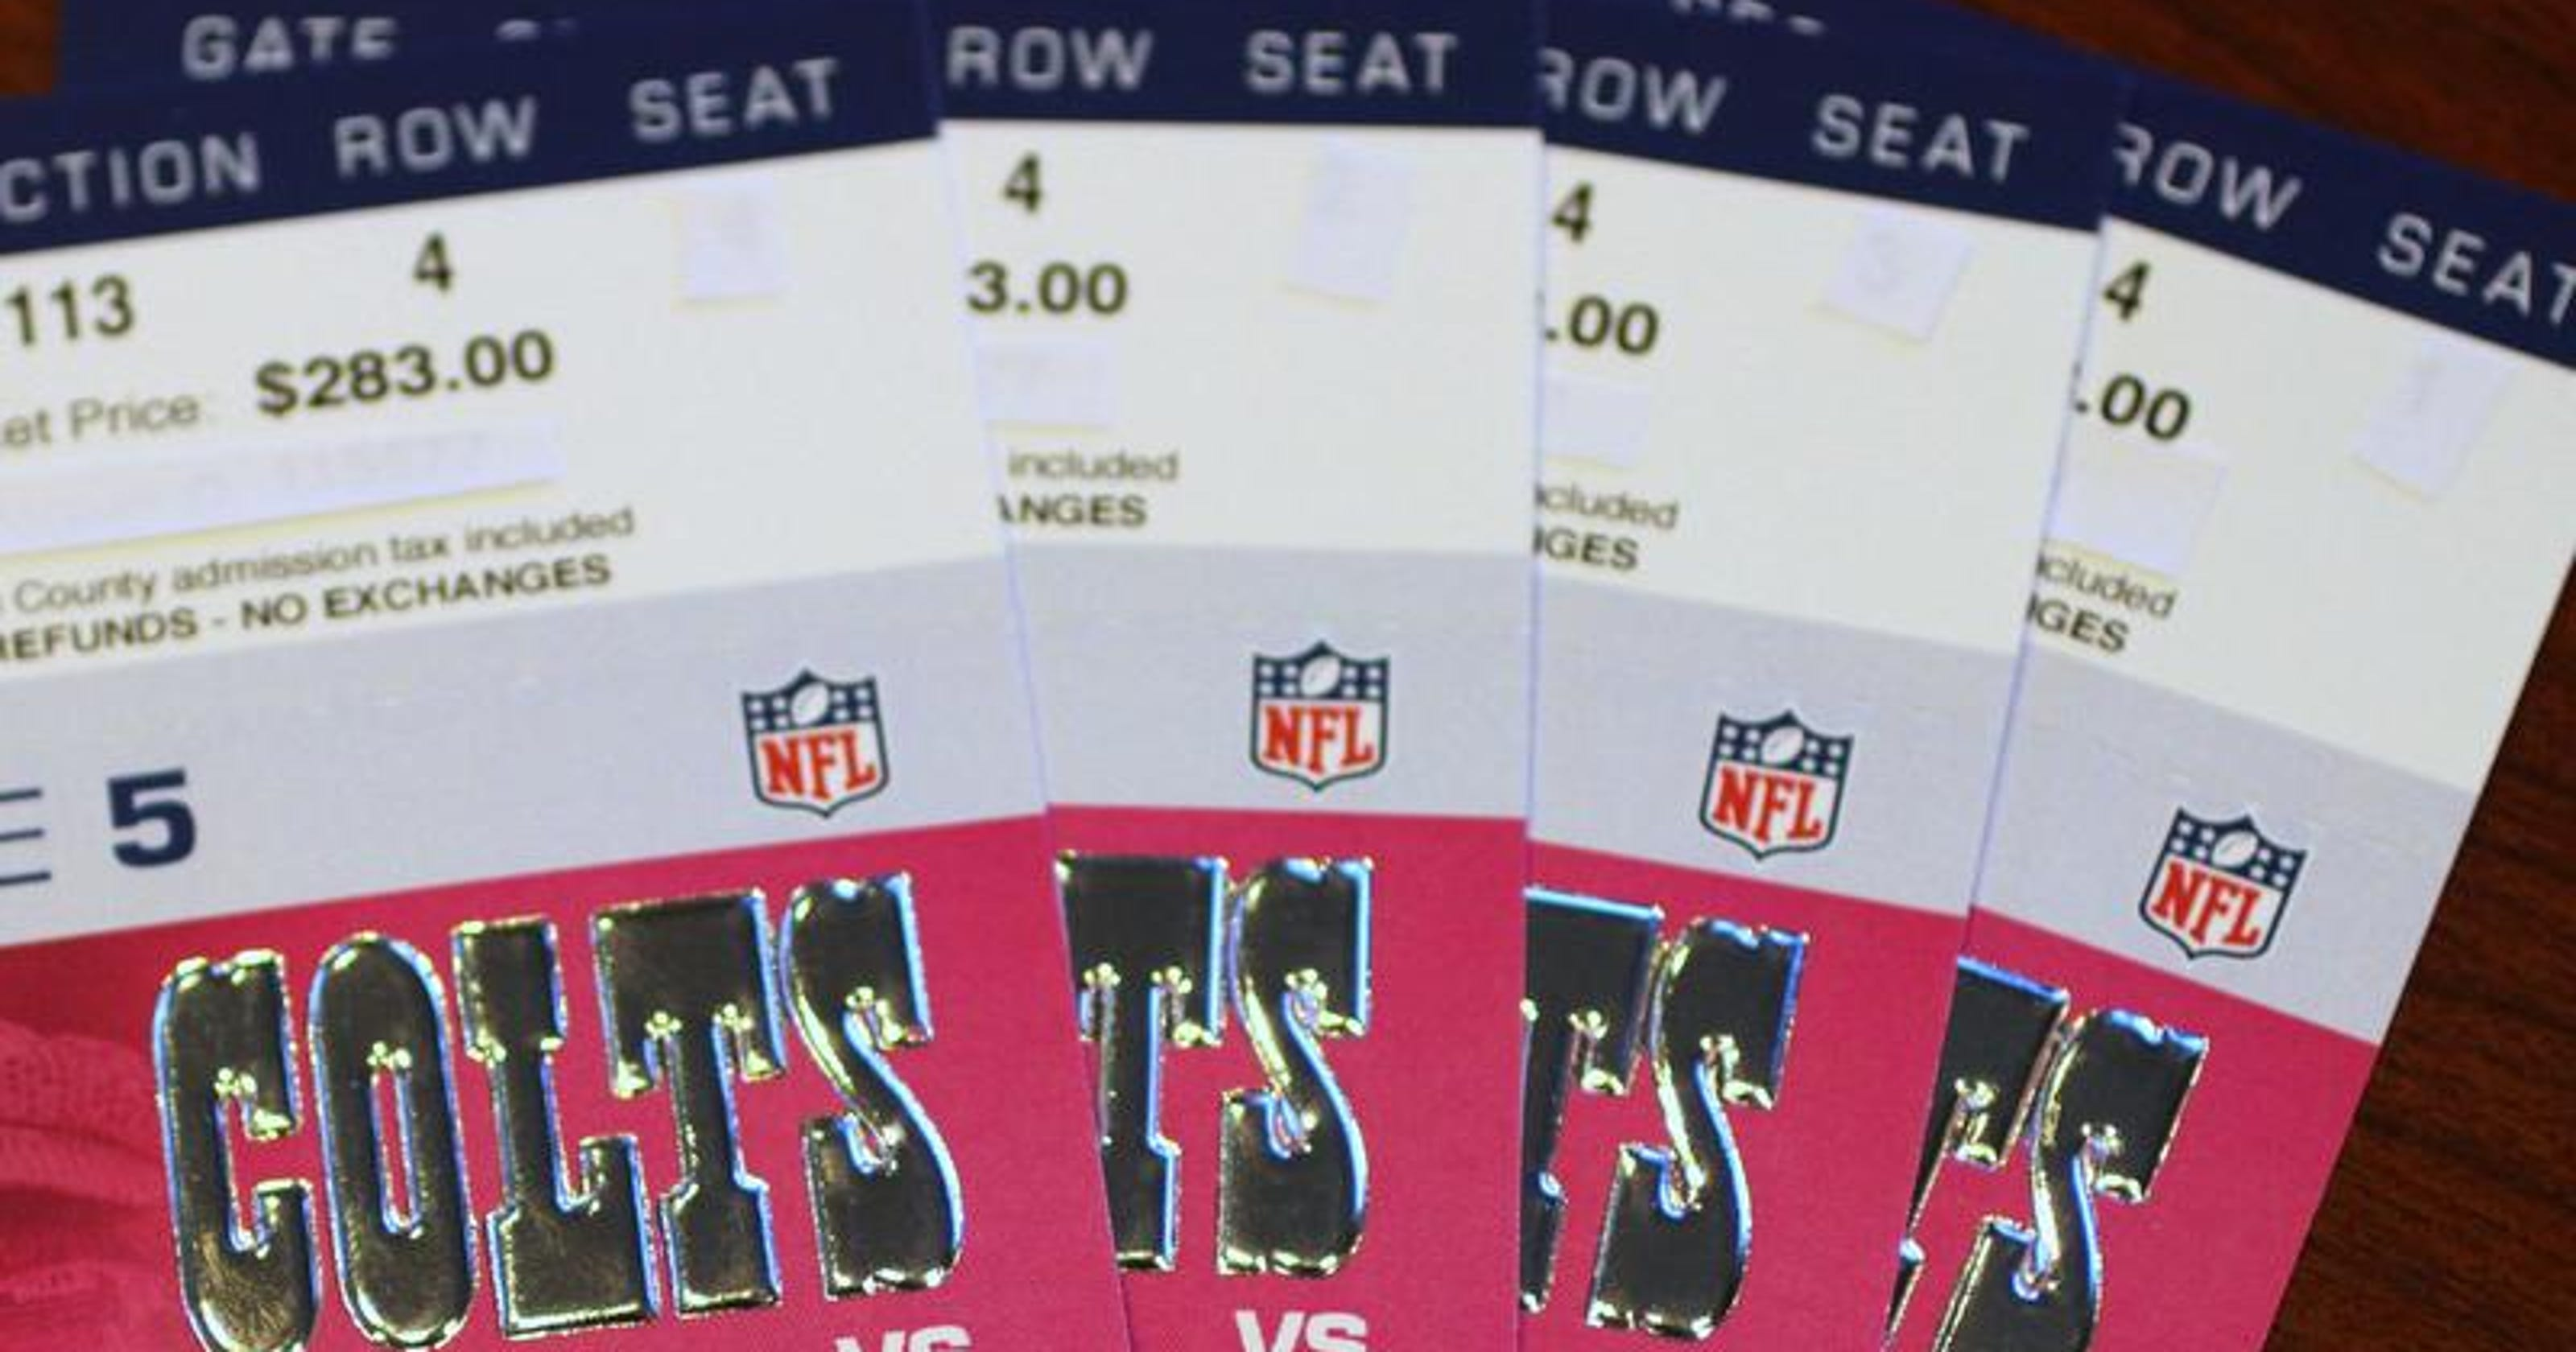 Ticket prices for Colts-Manning game have dipped since the